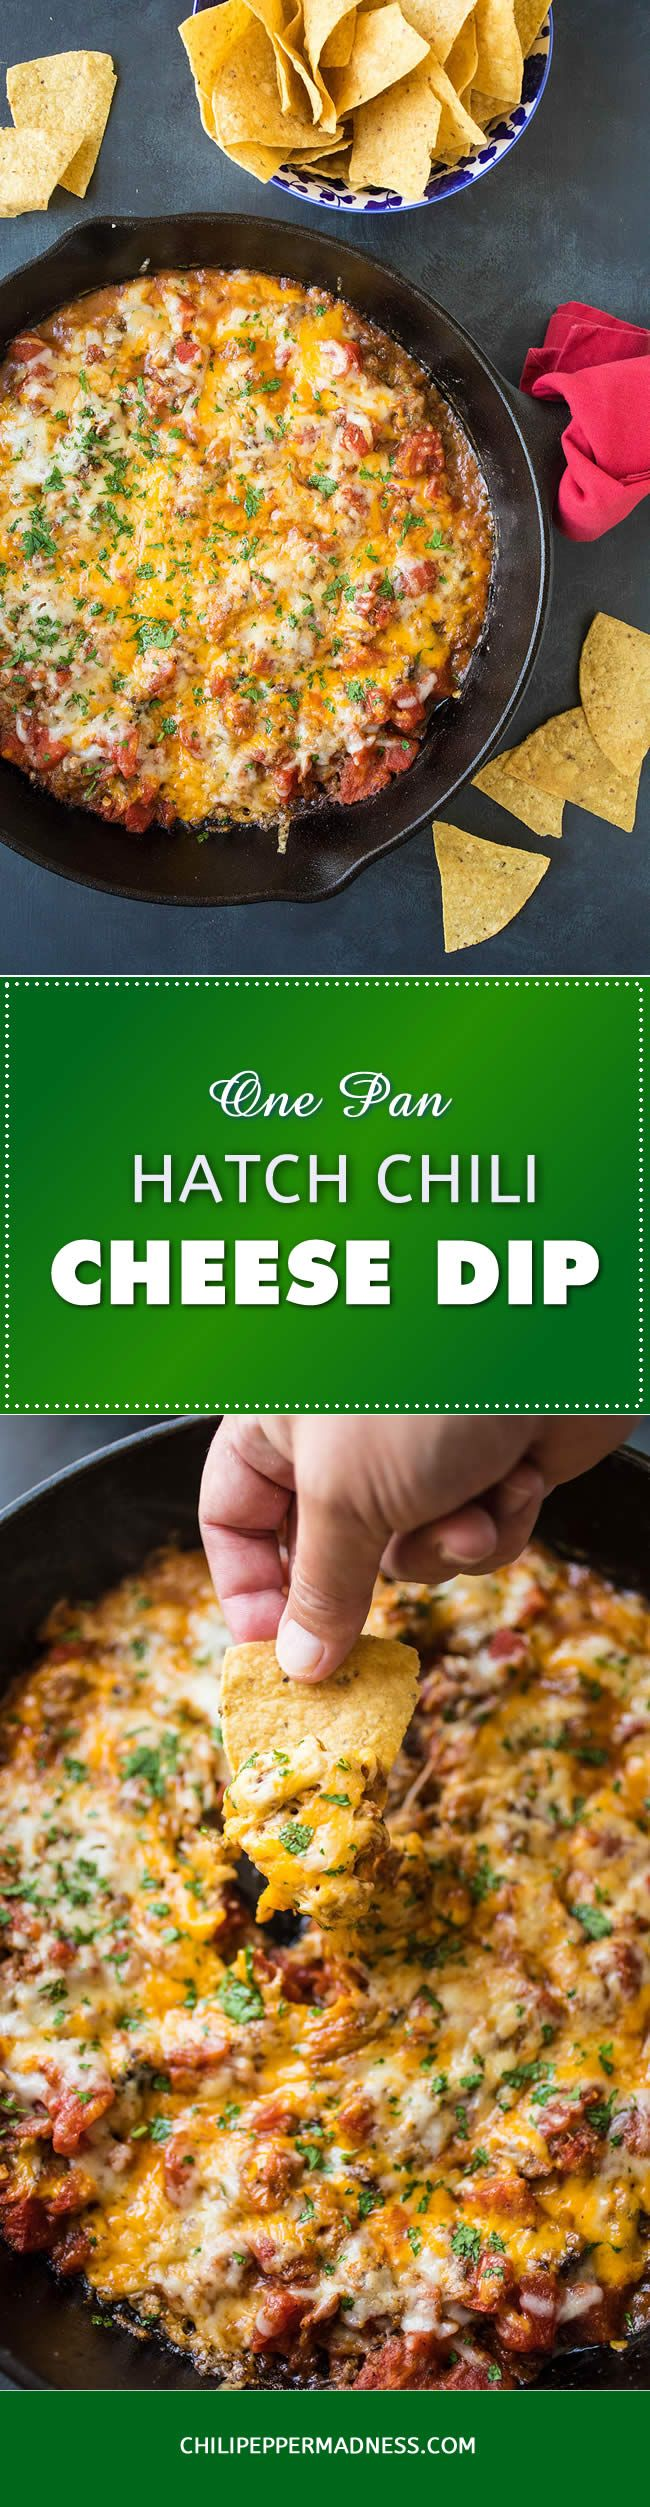 One-Pan Hatch Chili-Cheese Dip - A zesty, super cheesy dip recipe made with roasted Hatch chili peppers, cheddar and Monterrey Jack cheeses and plenty of seasoning. Bust out the chips! It's party time!